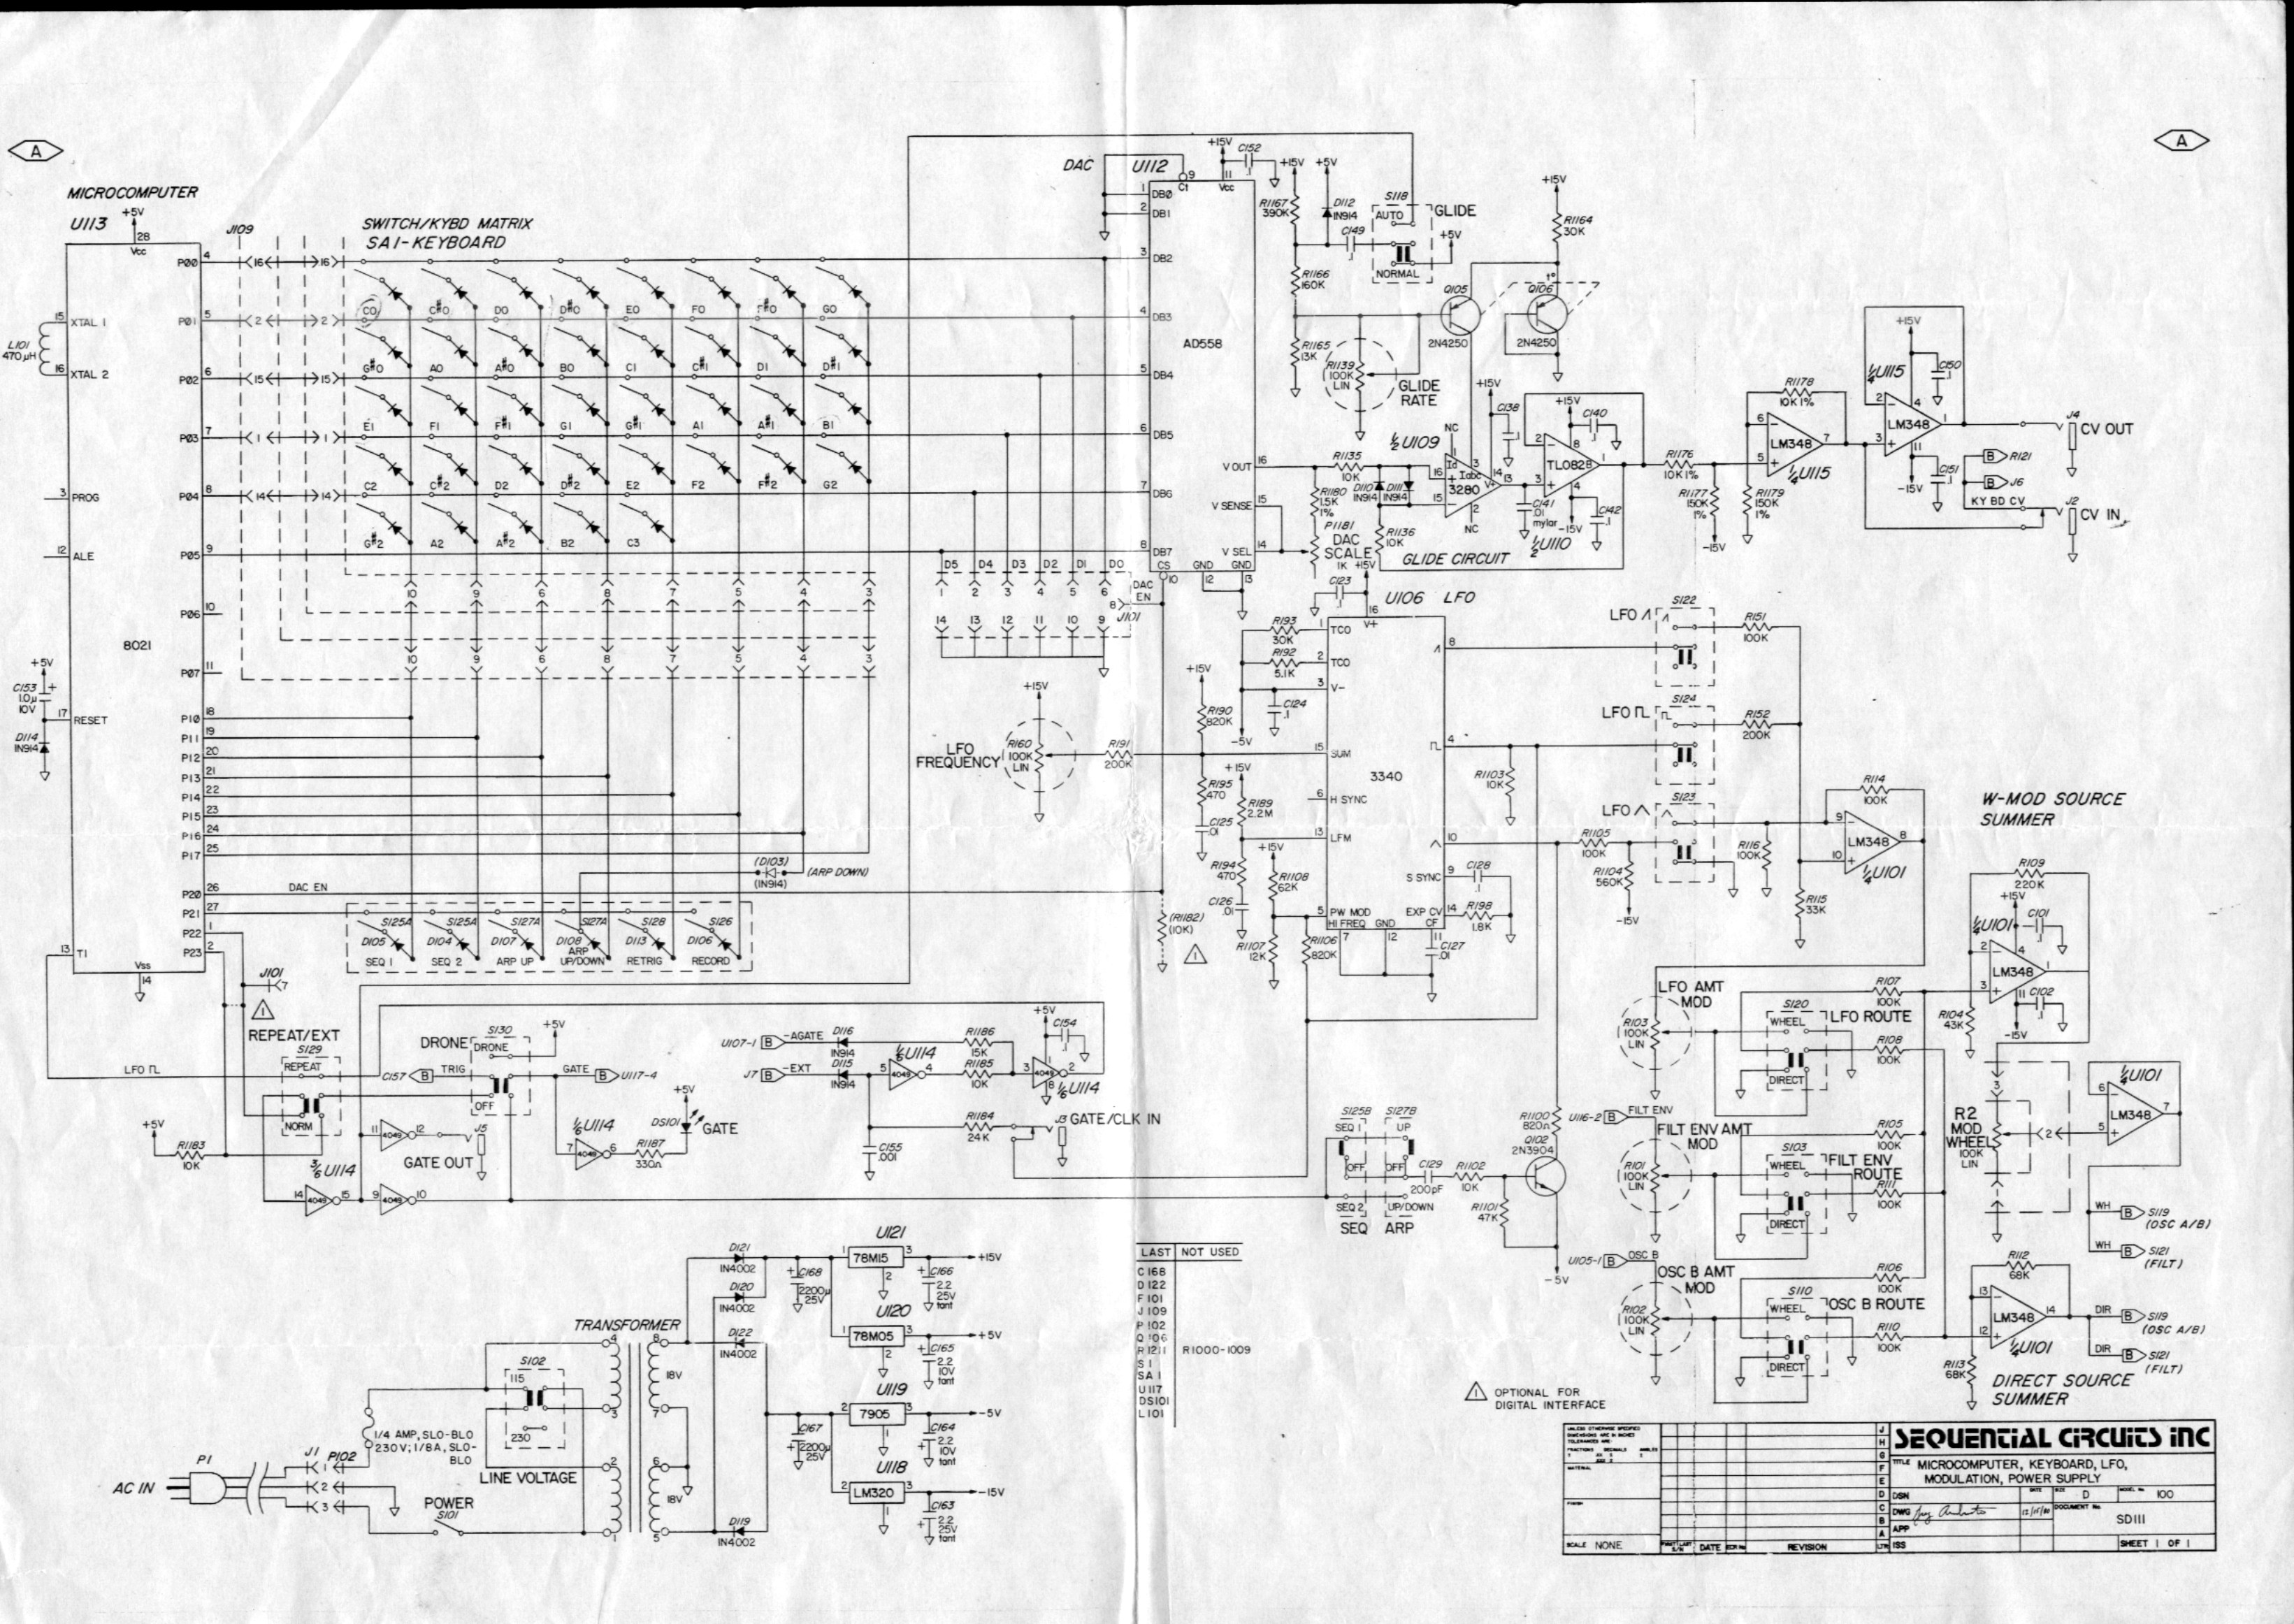 U Bent T8 Wiring Diagram